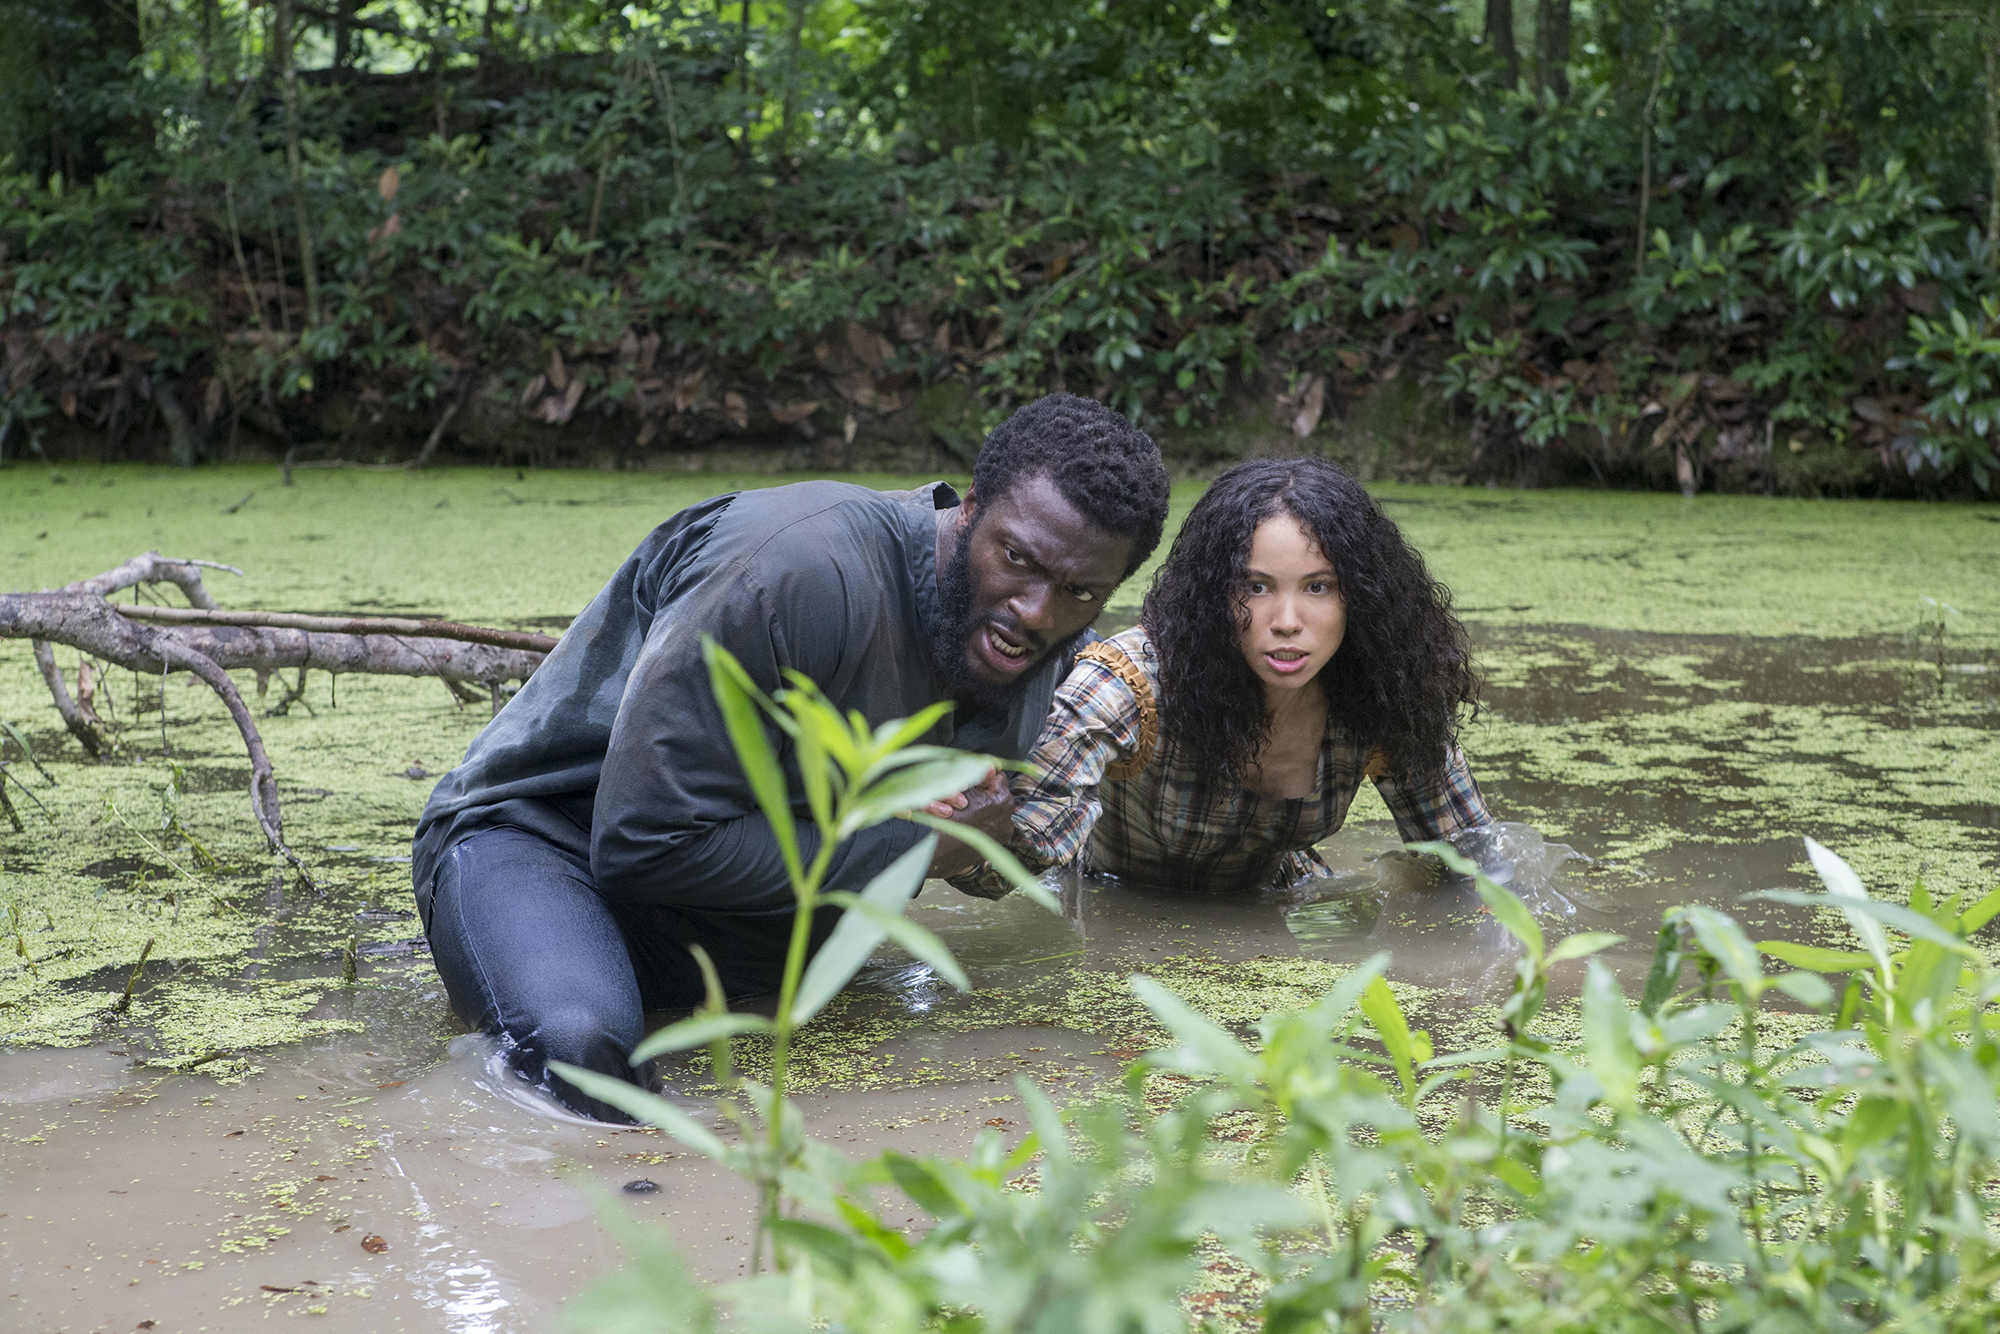 A Great Escape: Aldis Hodge (Noah) and Jurnee Smollett-Bell (Rosalee) in Stan's  Underground